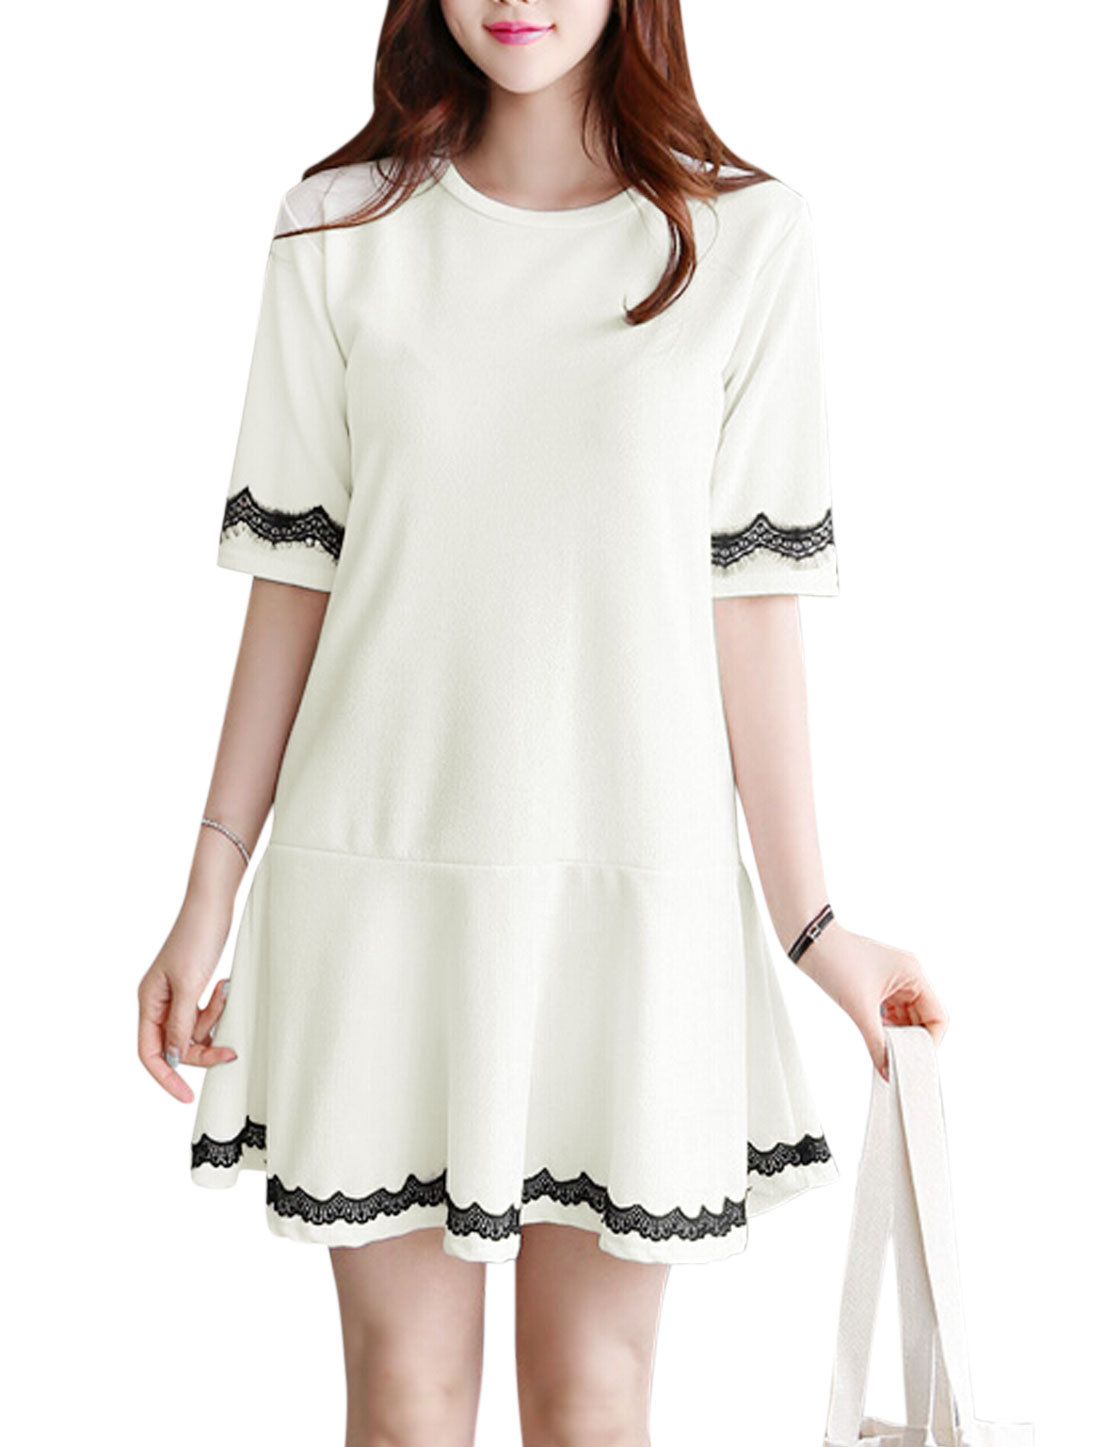 Ladies Half Sleeve Round Neck Panel Detail Unlined Casual Dress White M